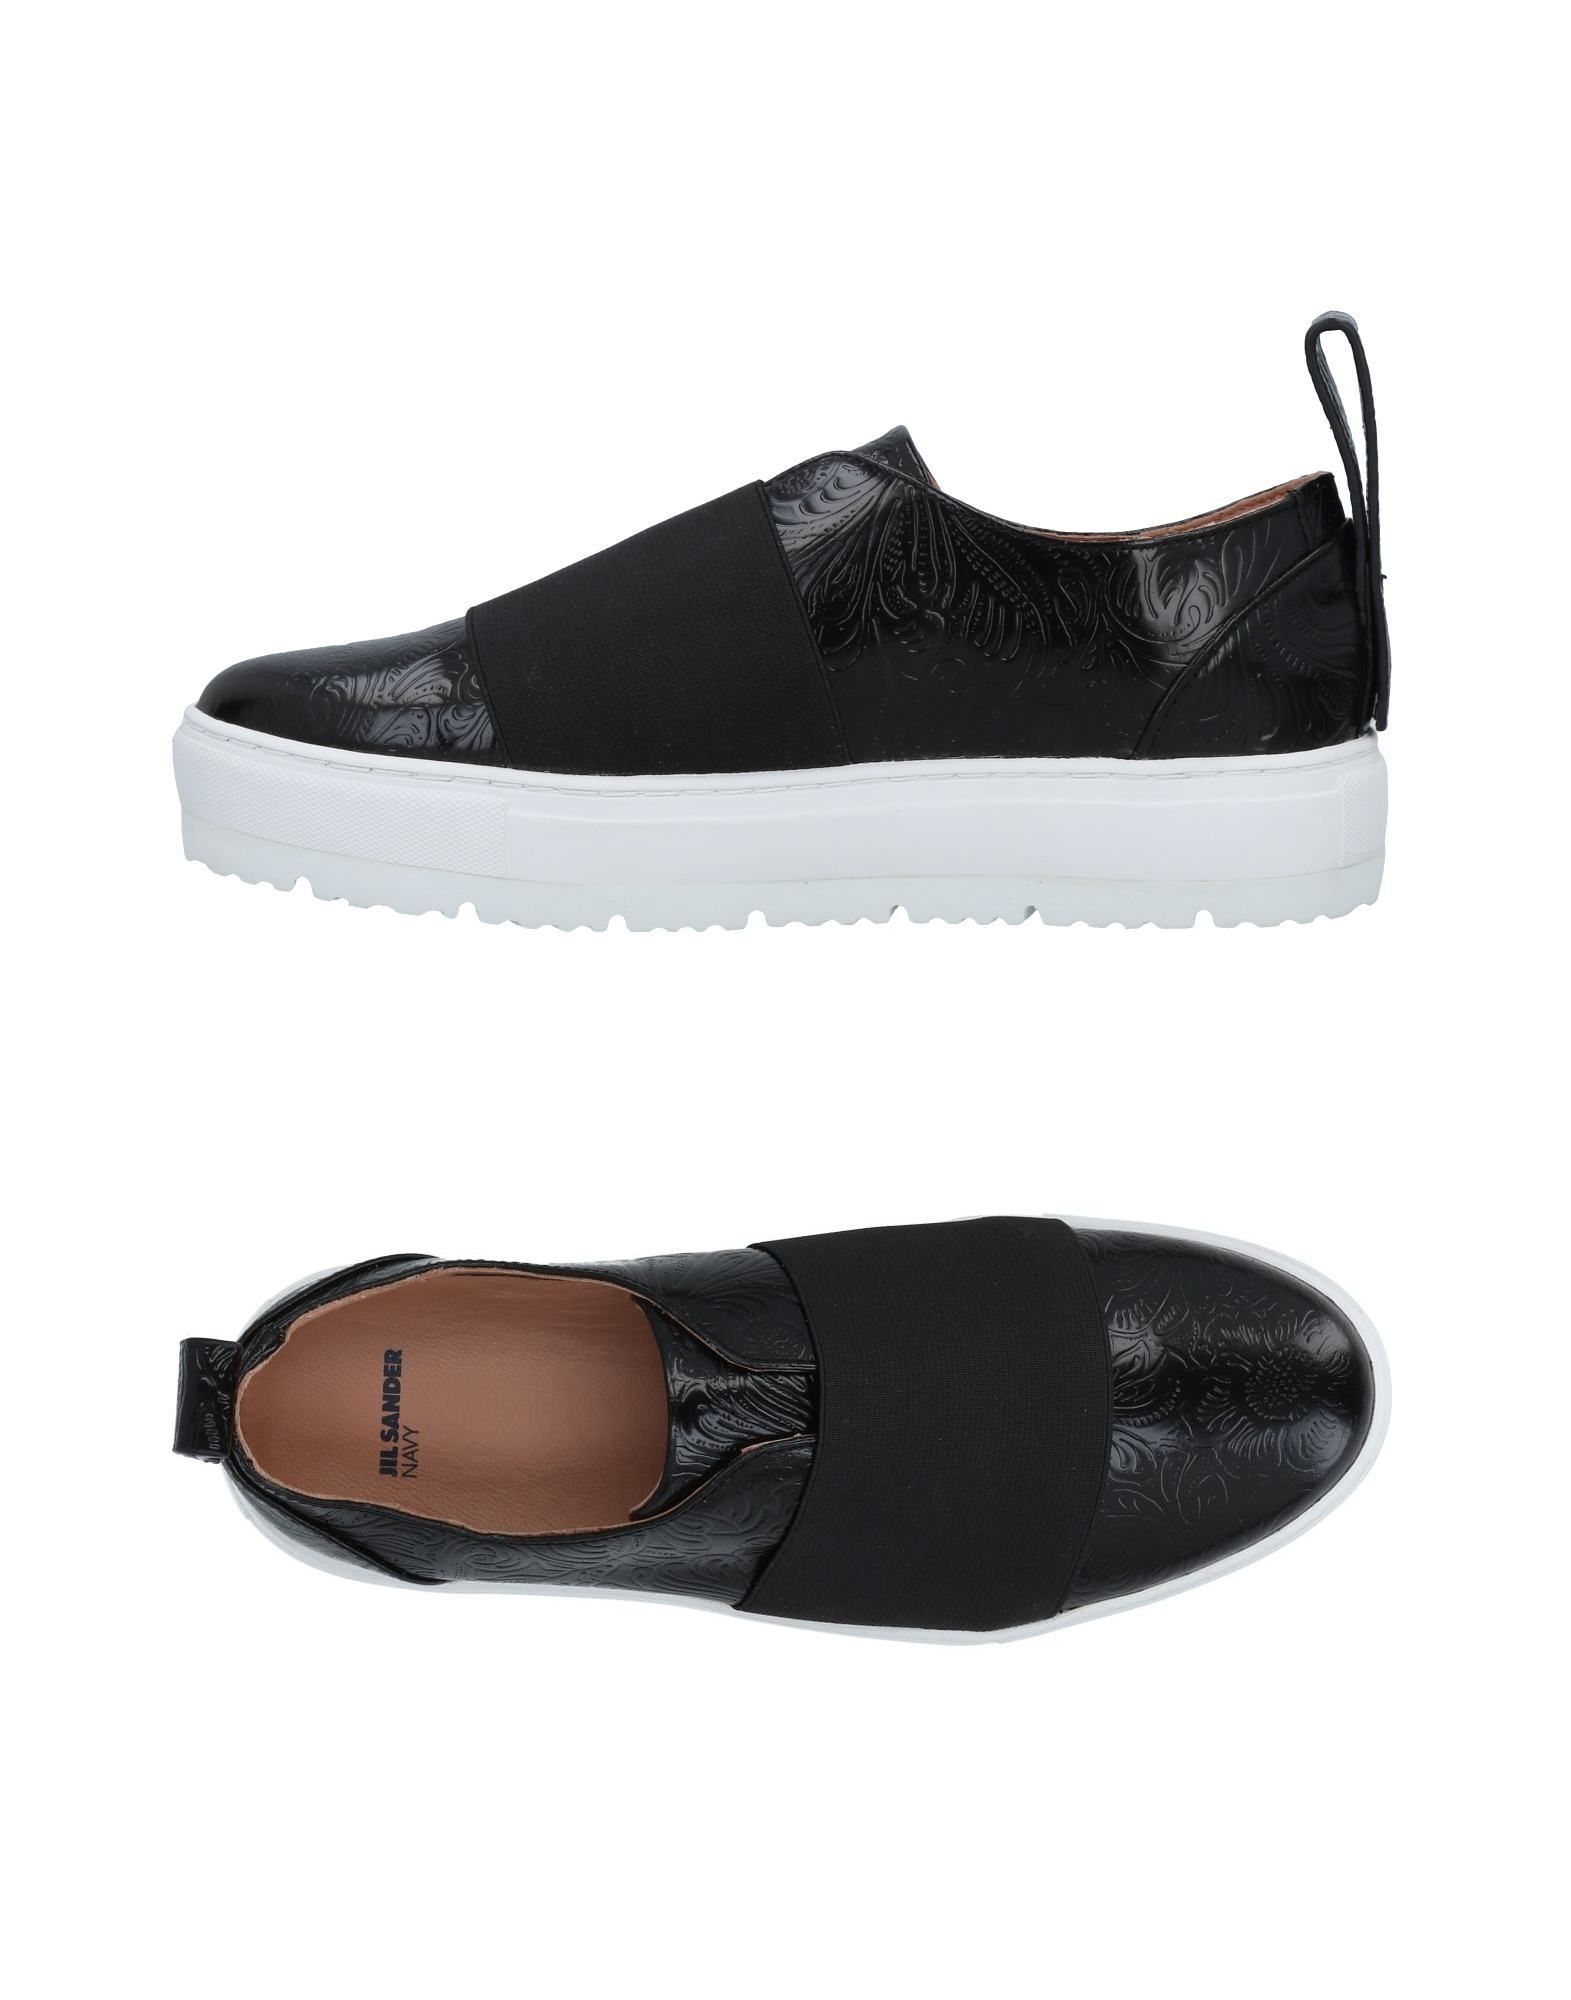 Jil Sander Navy Black Calf Leather Slip Ons